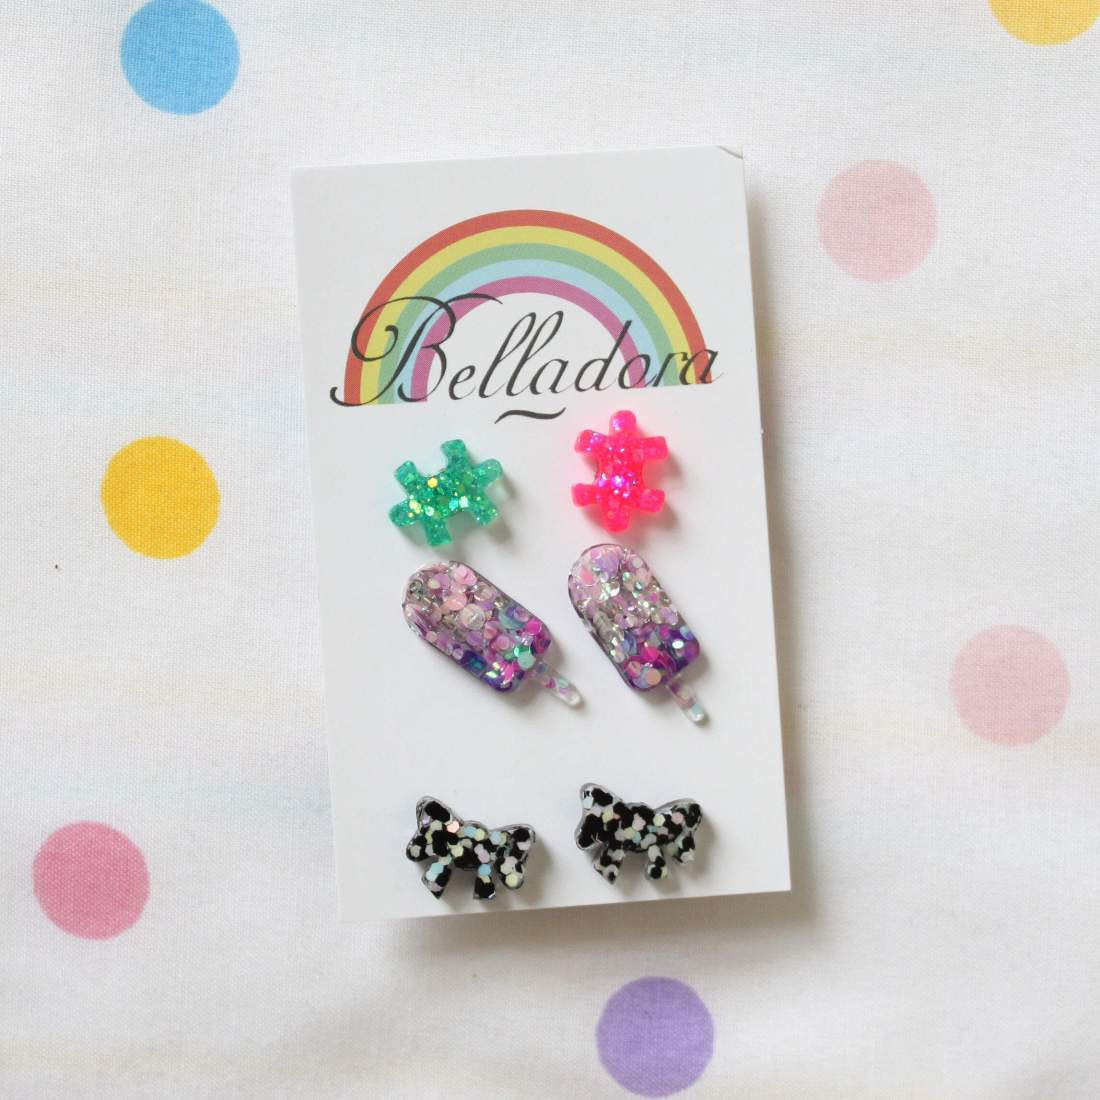 Earring set by Belladora